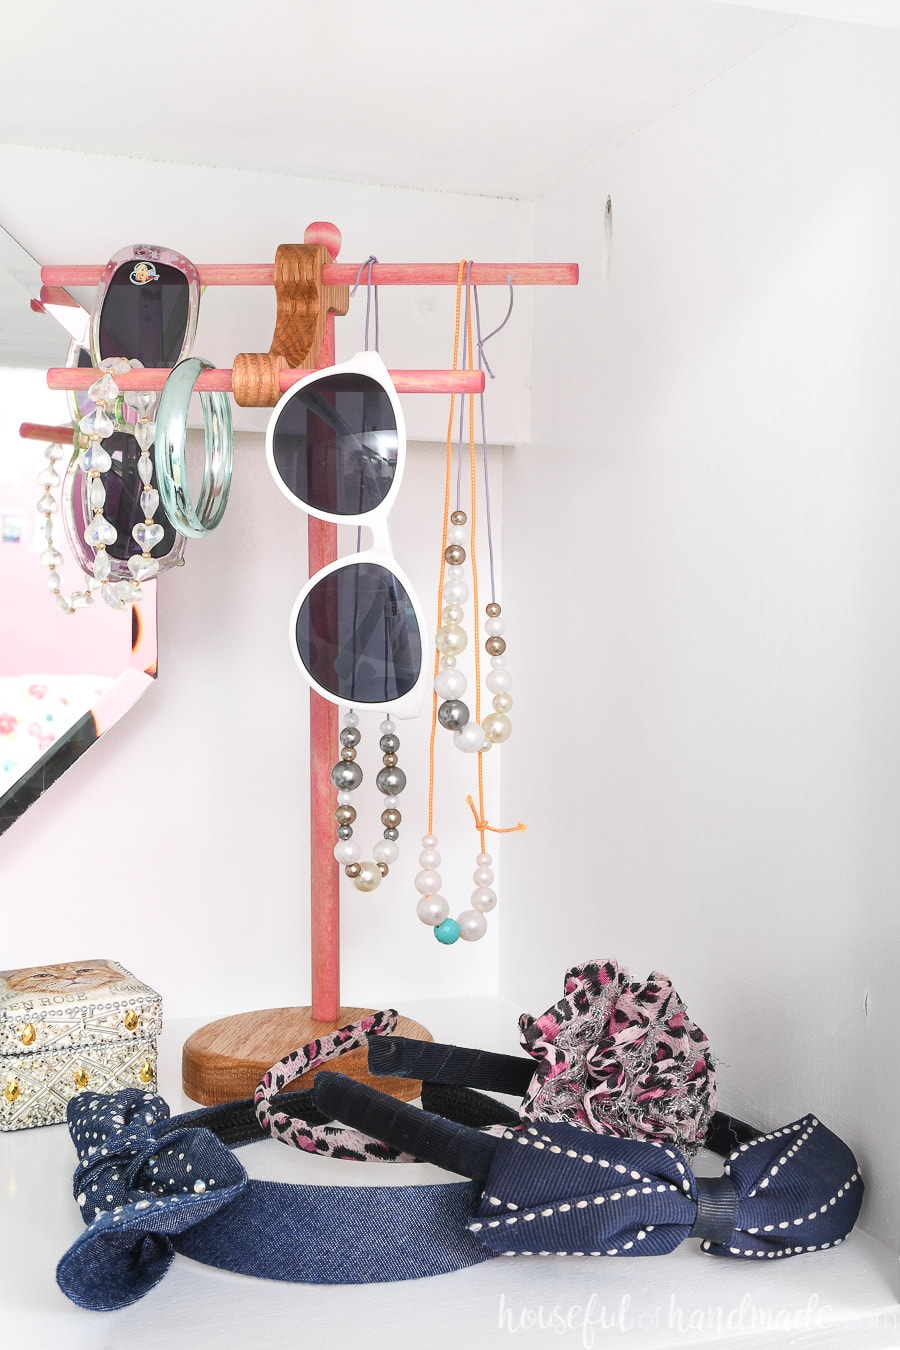 Wooden jewelry stand with kids bracelets, necklaces and sunglasses hanging on it.